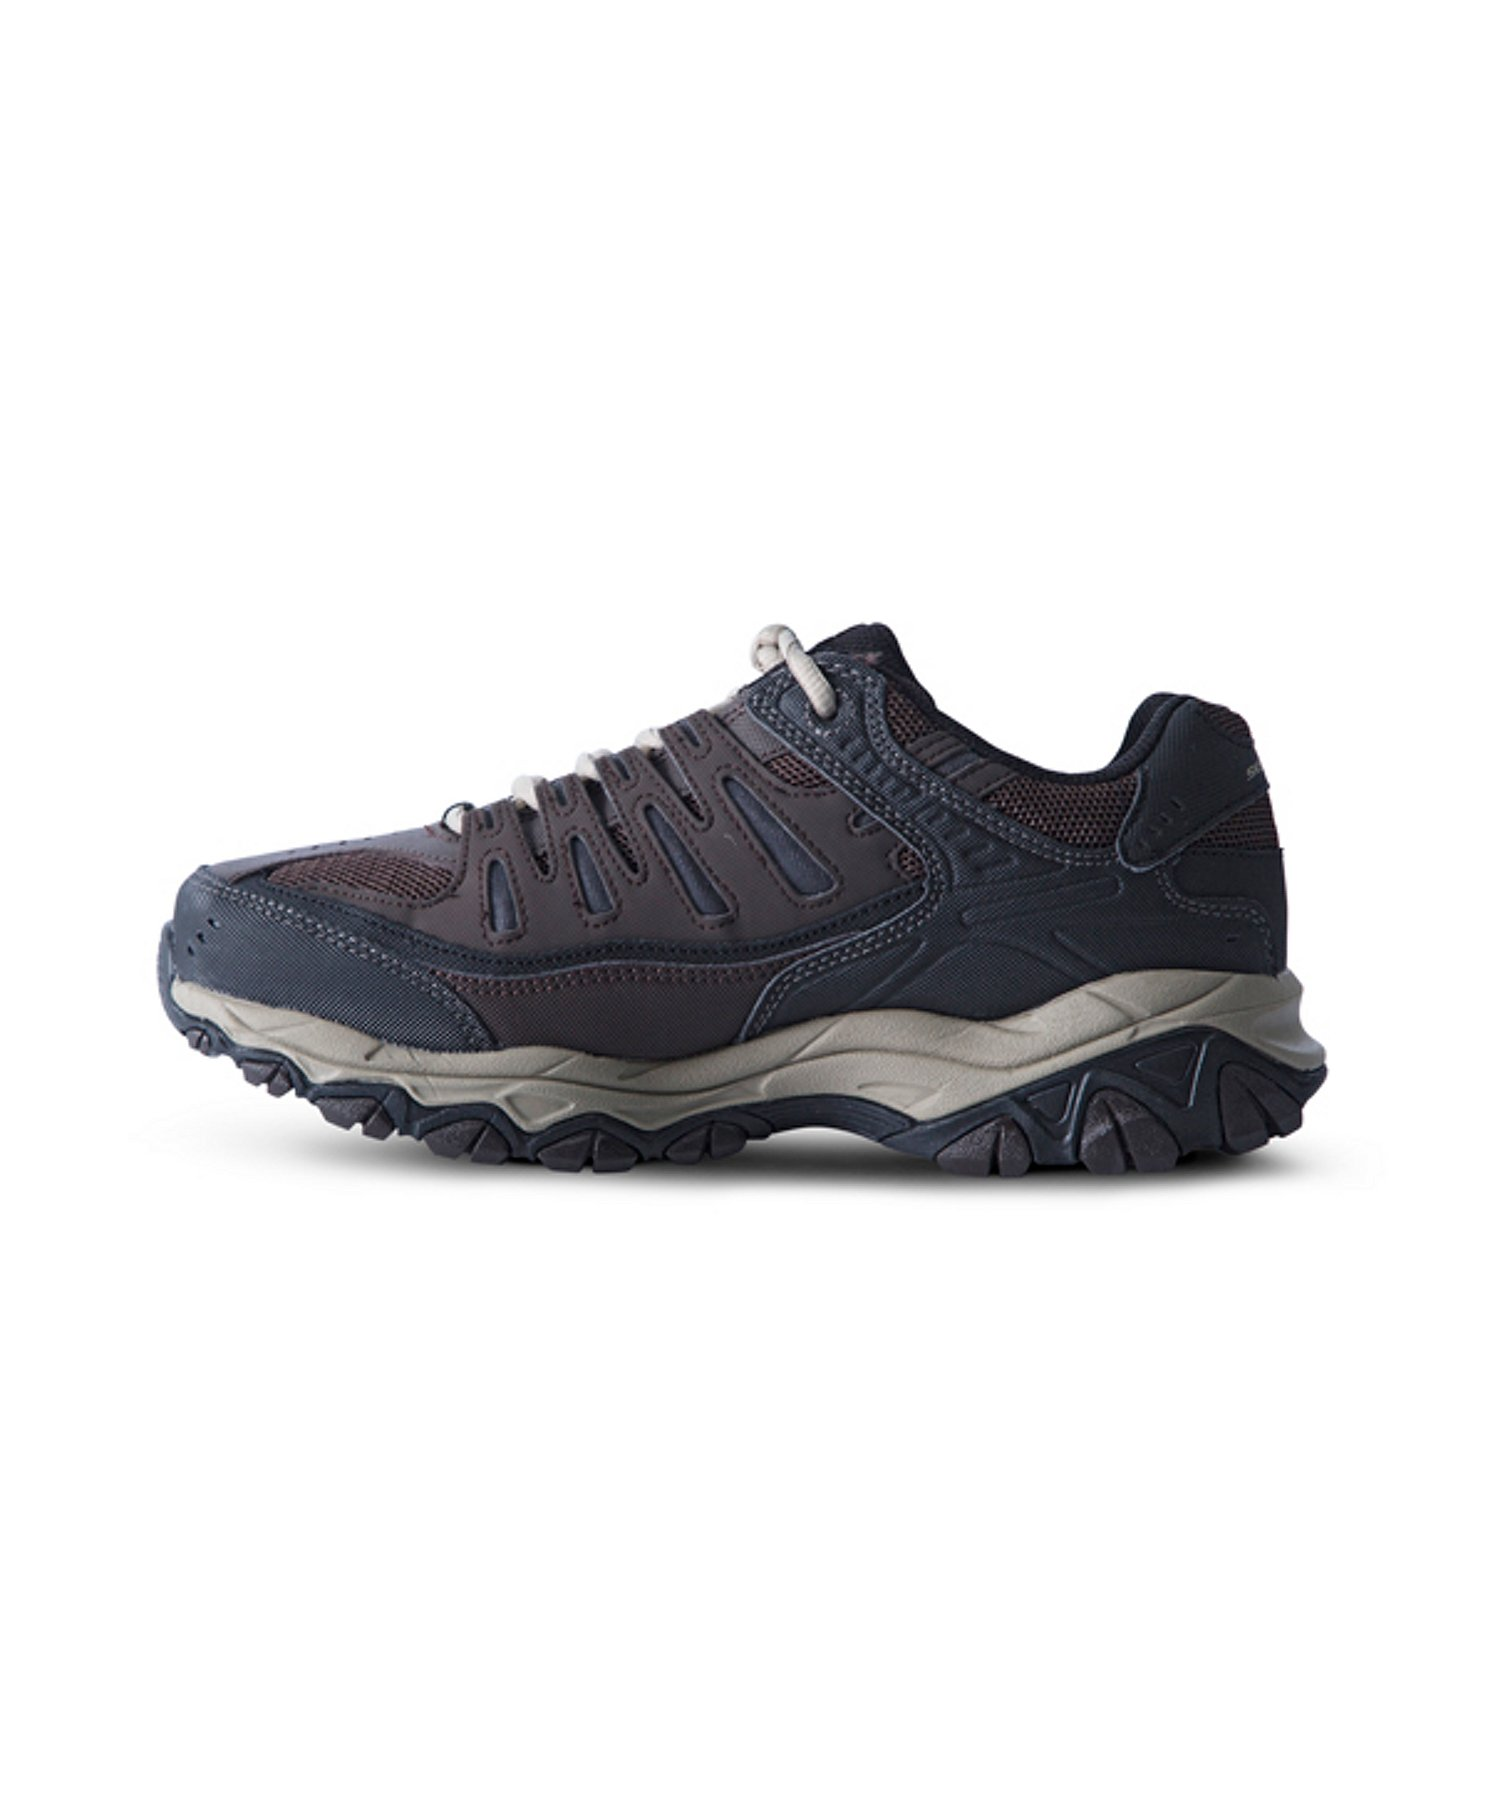 New Balance 875 chaussures pour hommes